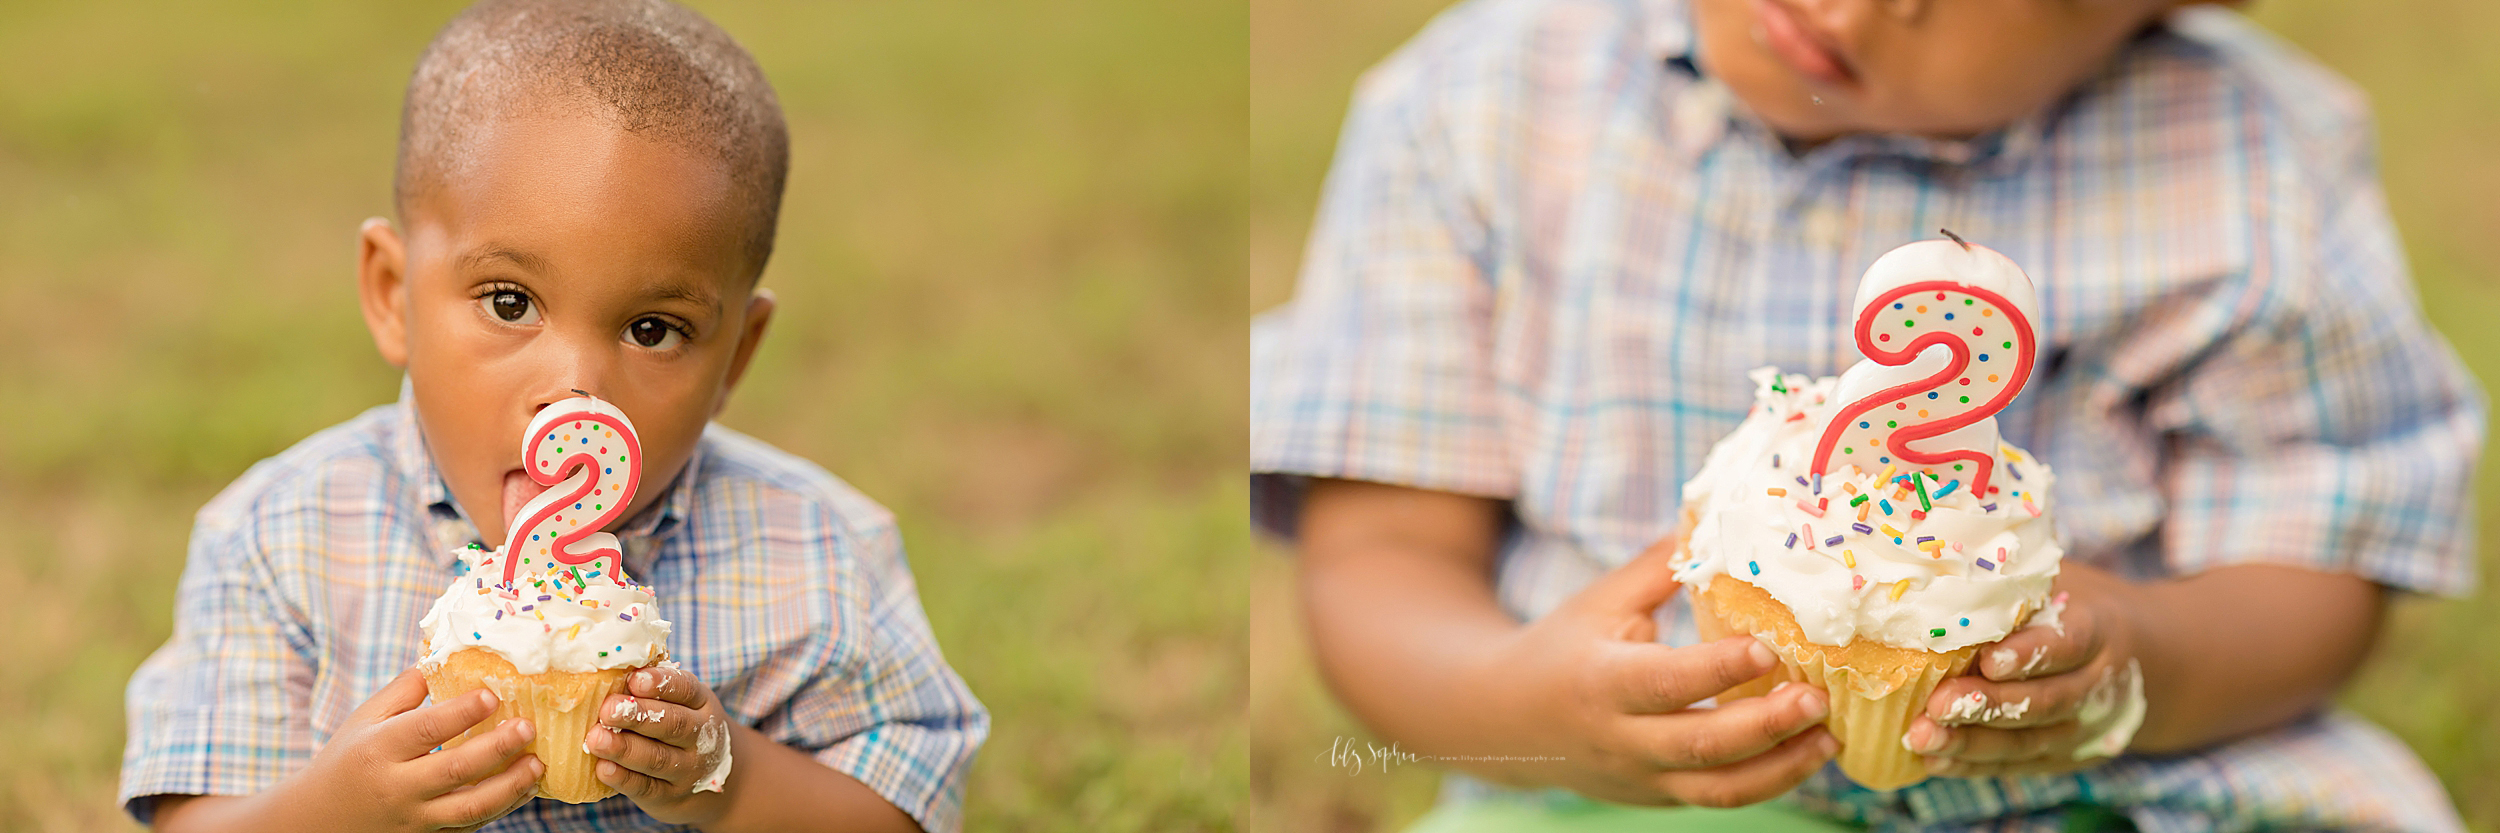 atlanta-hapeville-brookhaven-alpharetta-virginia-highlands-smyrna-decatur-lily-sophia-photography-outdoor-family-mother-toddler-son-second-birthday-park-sunset-pictures_0709.jpg